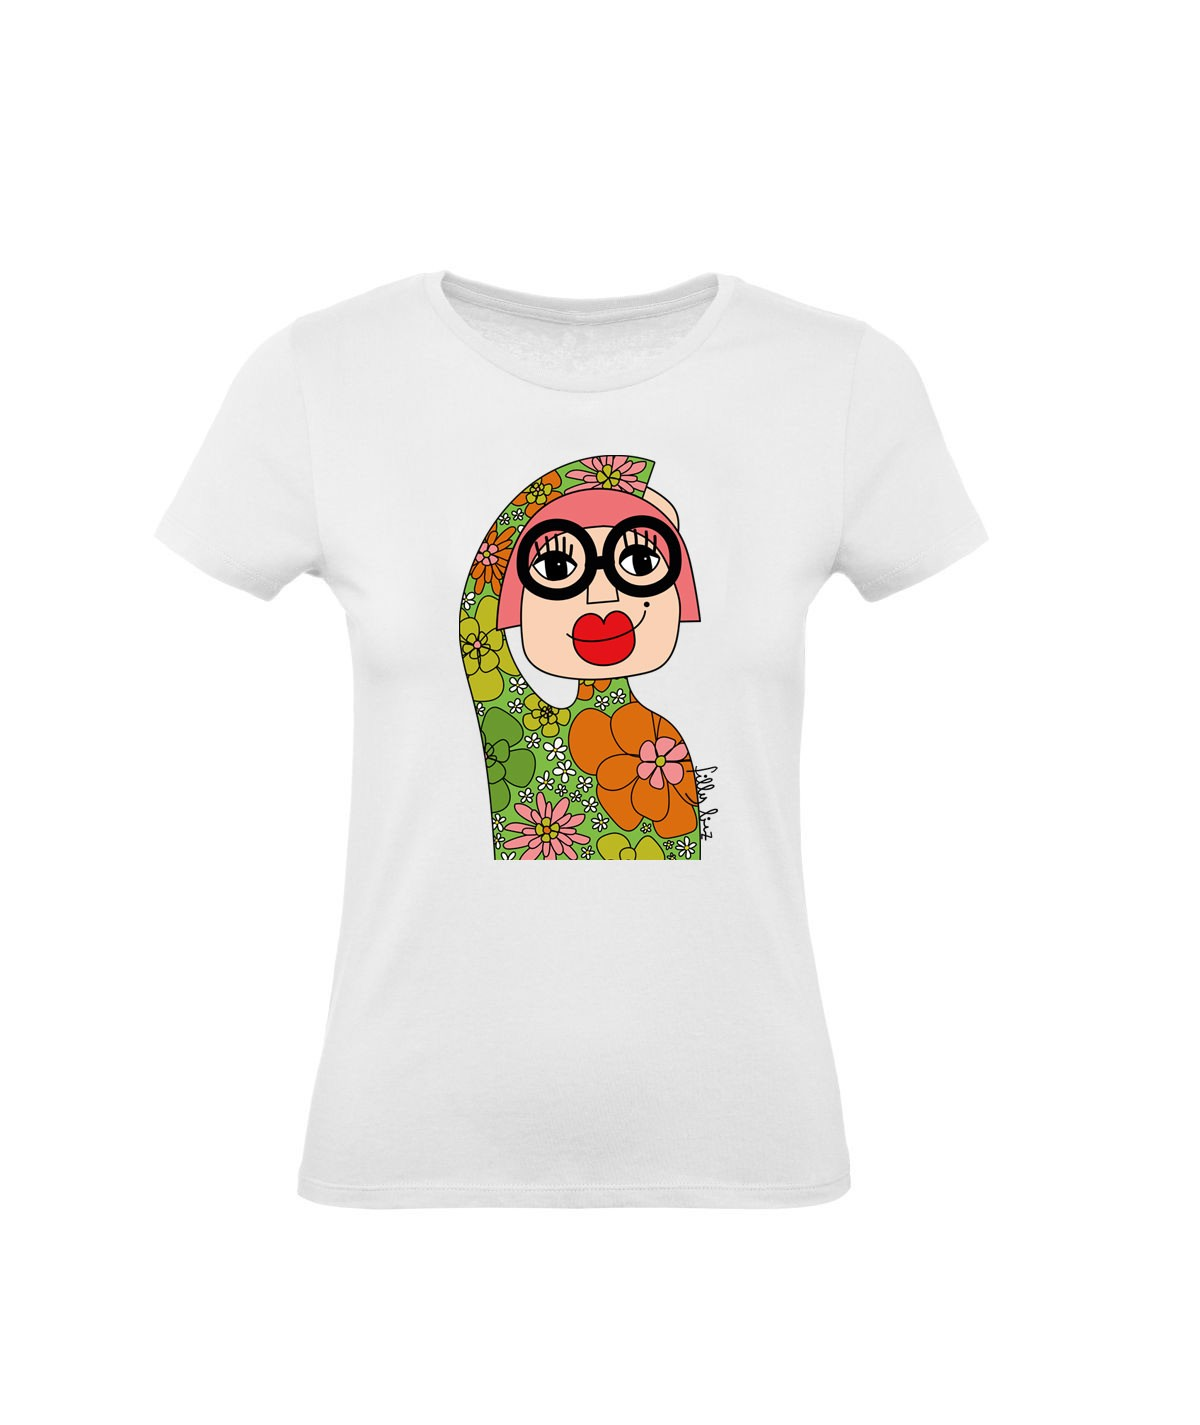 Seventies girl ● printed...